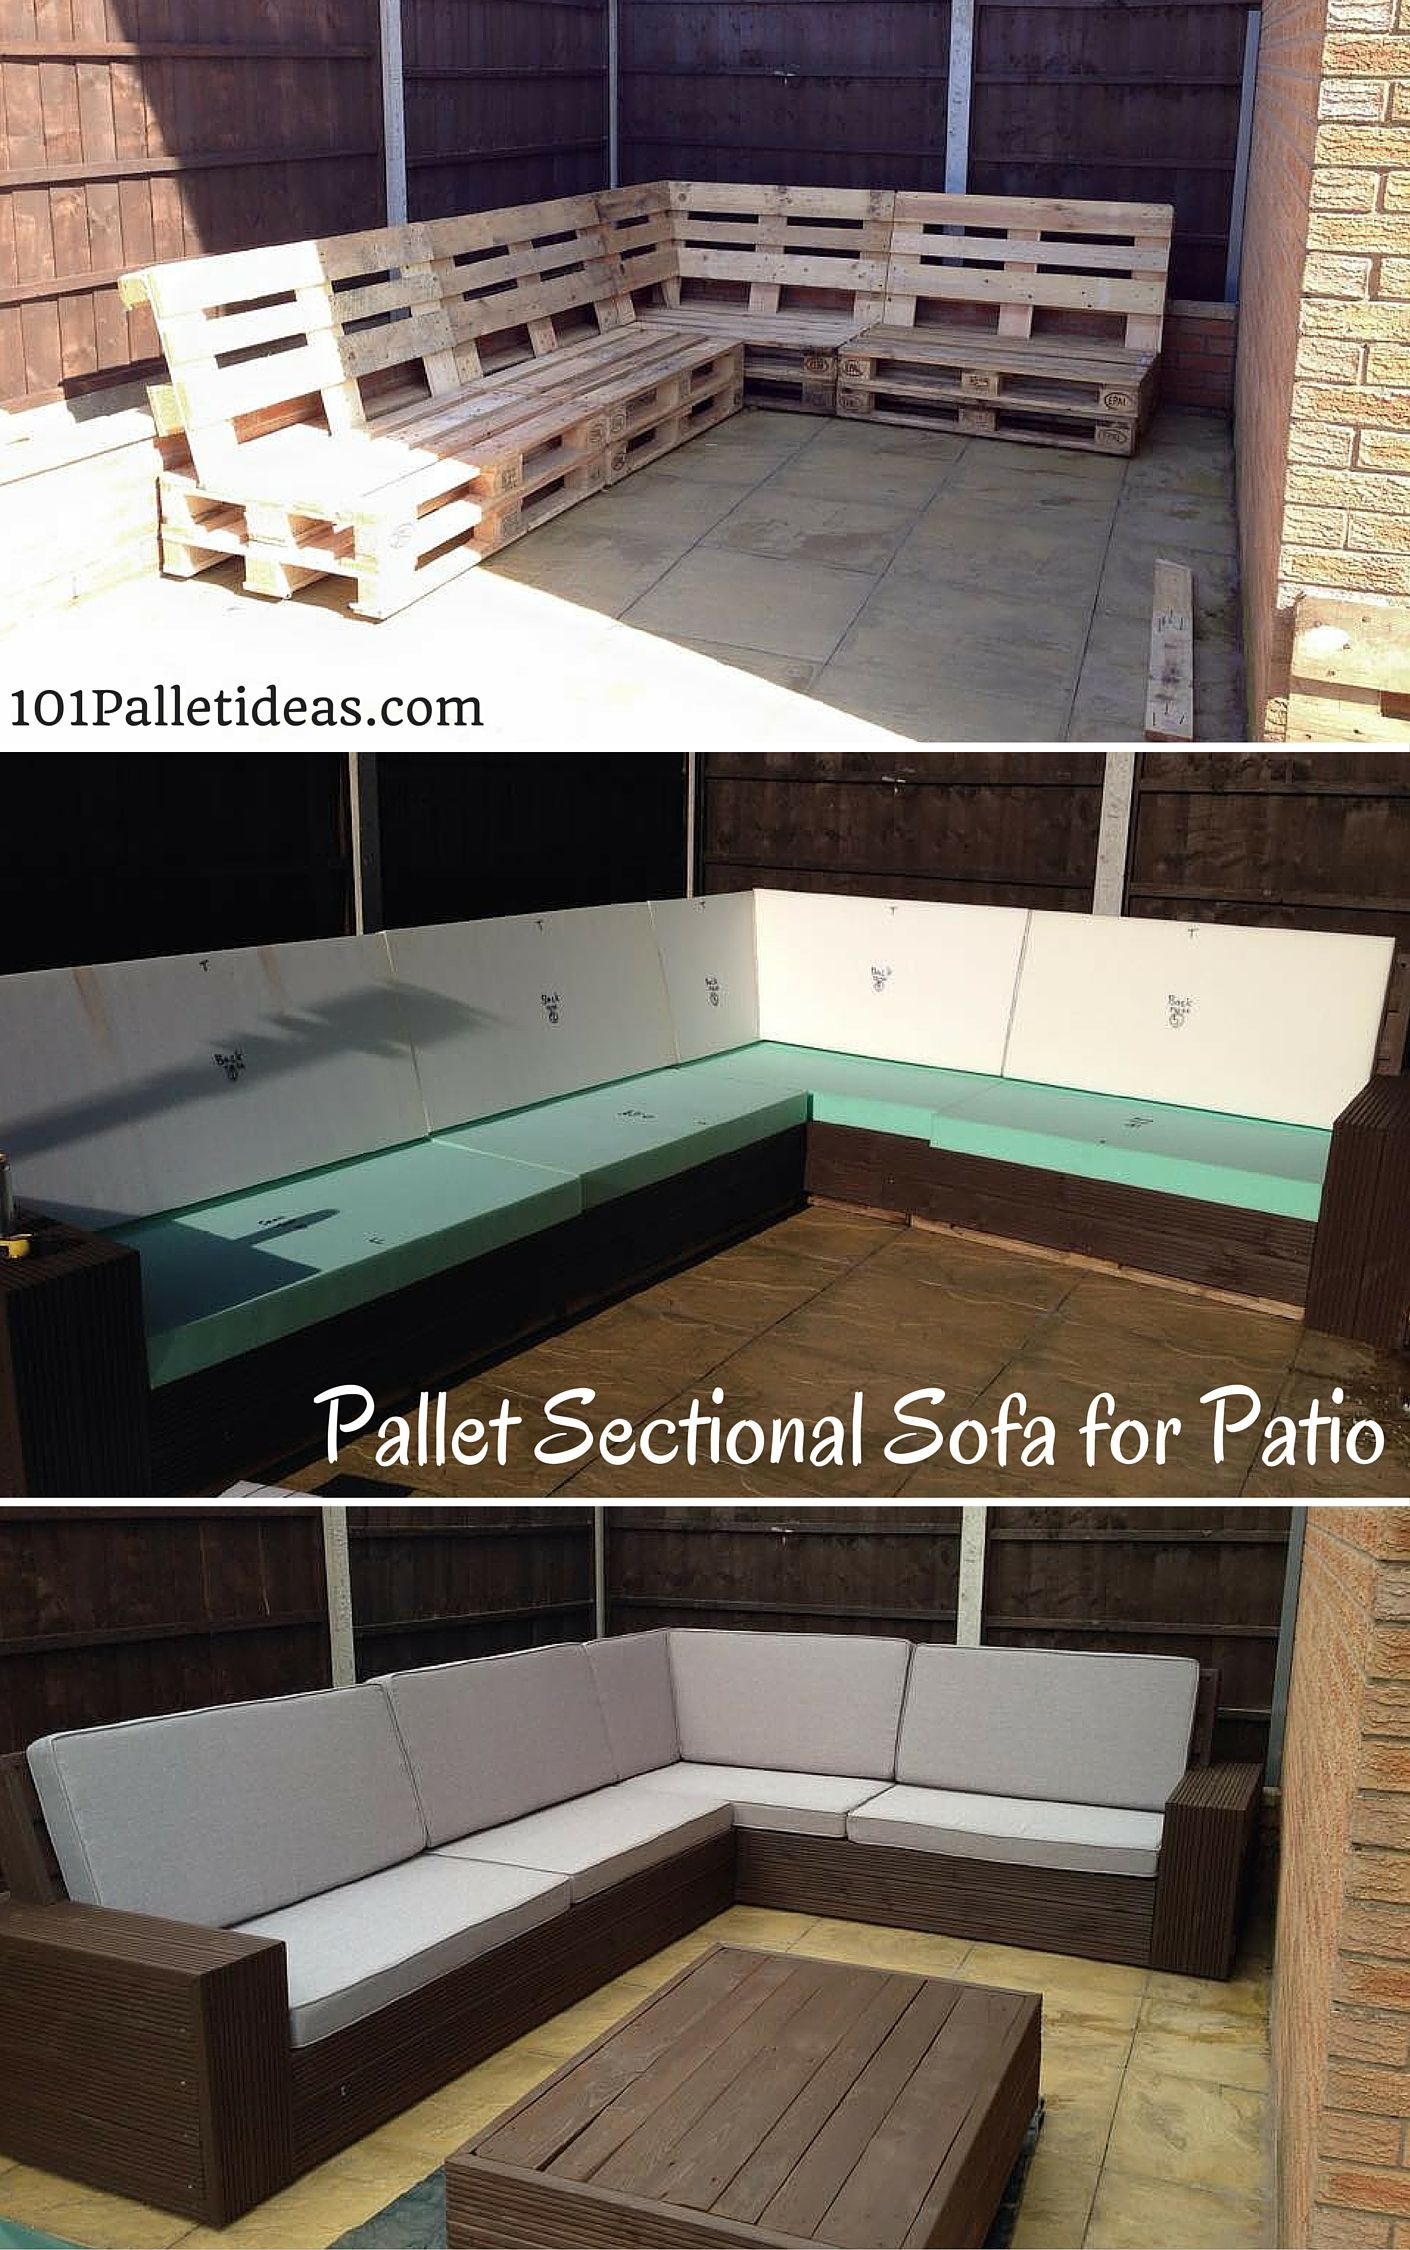 Arredo Giardino In Pallet diy pallet sectional sofa for patio - self-installed 8-10